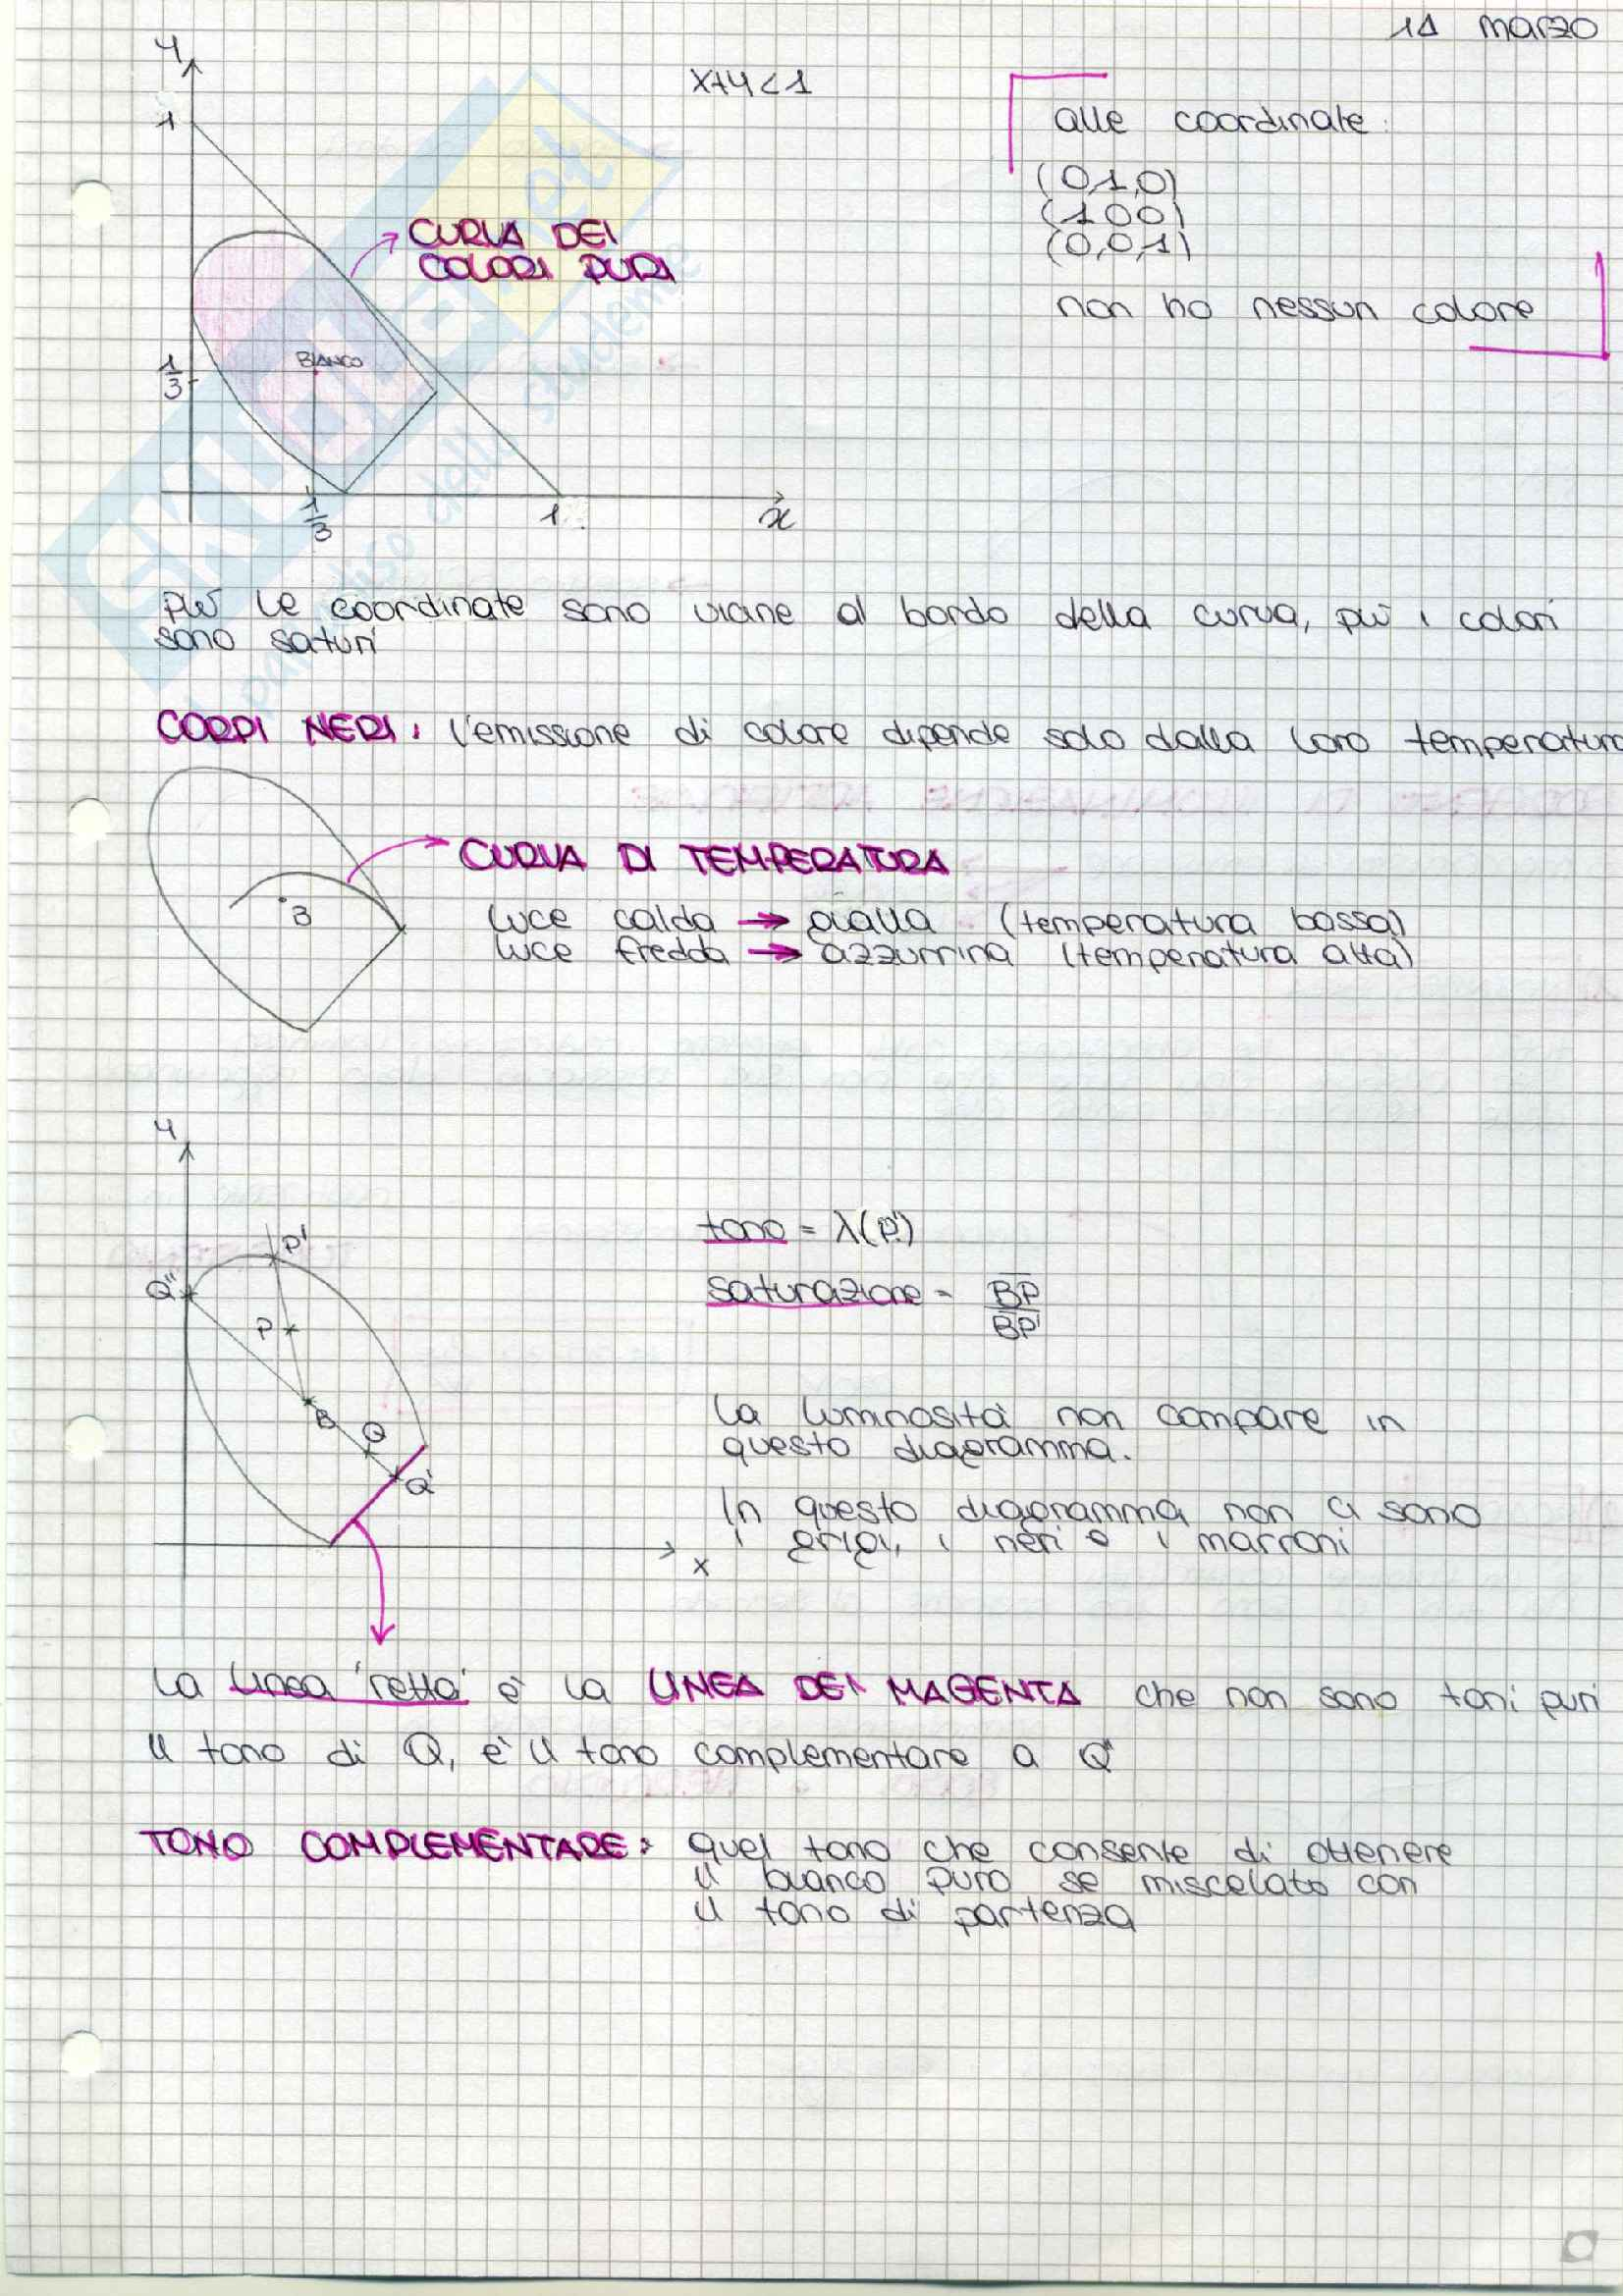 Fisica tecnica ambientale Pag. 11